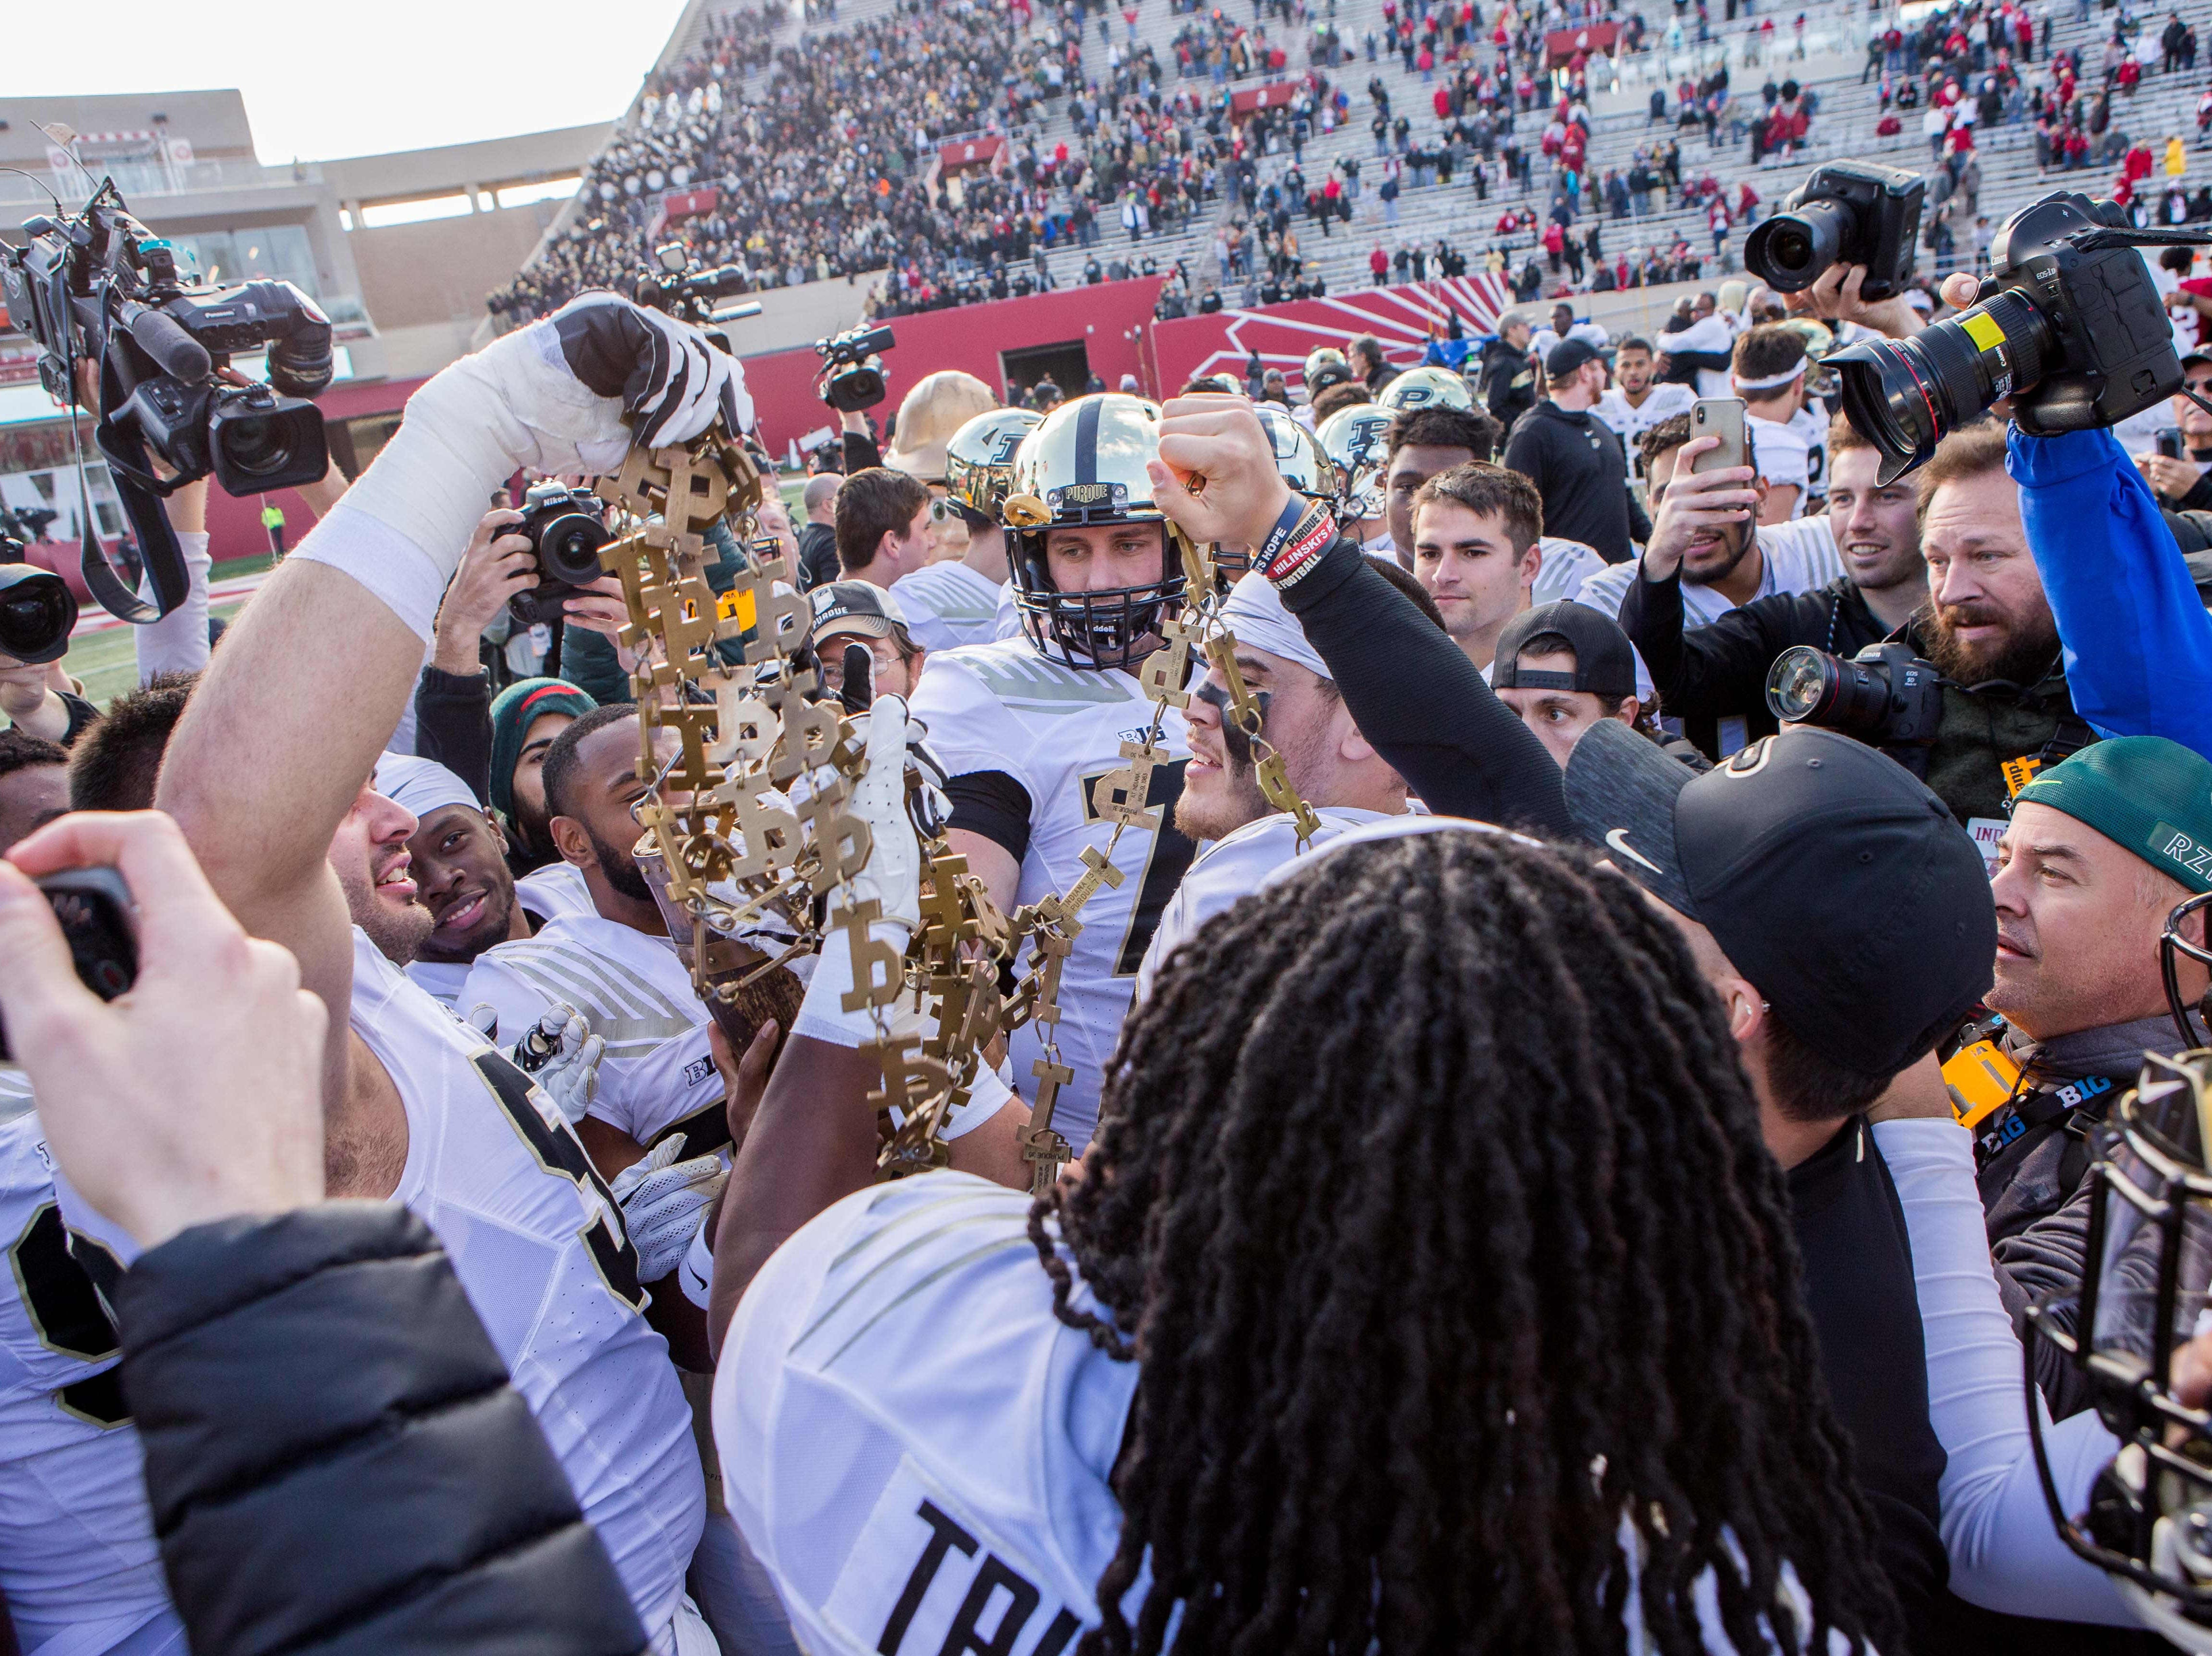 Purdue Boilermakers players pull the chain out of the old oak bucket after a game against the Indiana Hoosiers at Memorial Stadium.